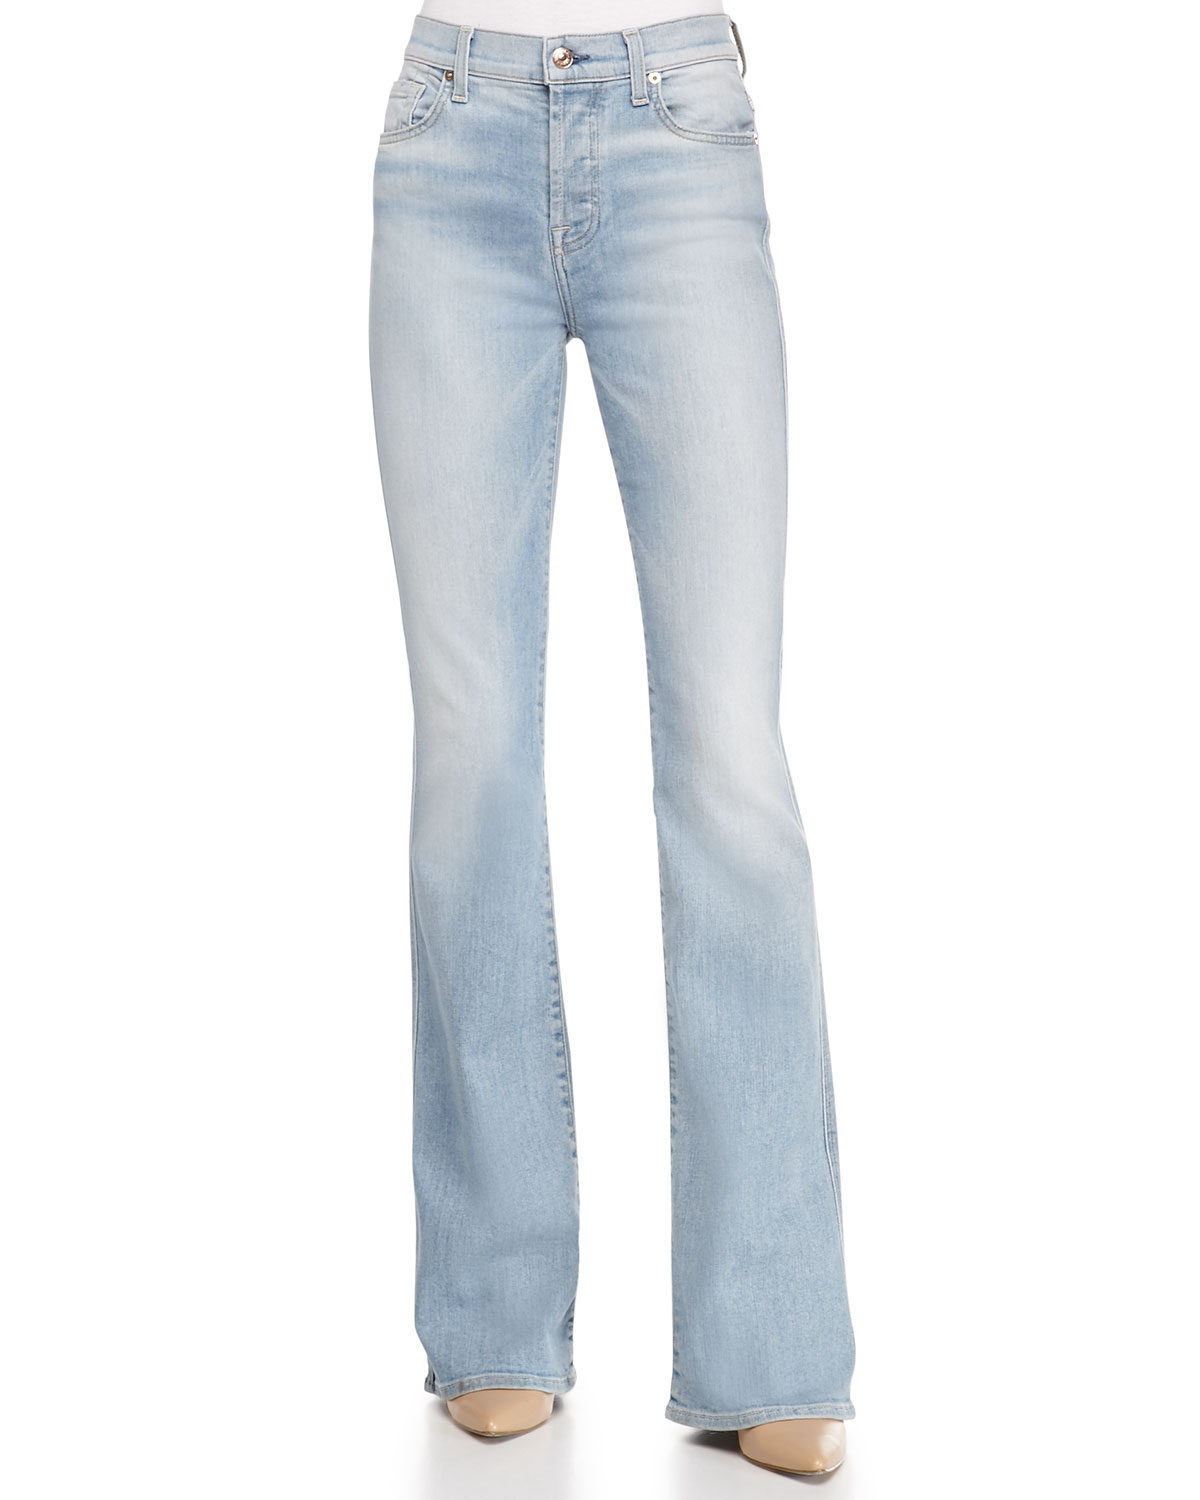 7 for all mankind High-waist Vintage Bootcut Jeans in White | Lyst